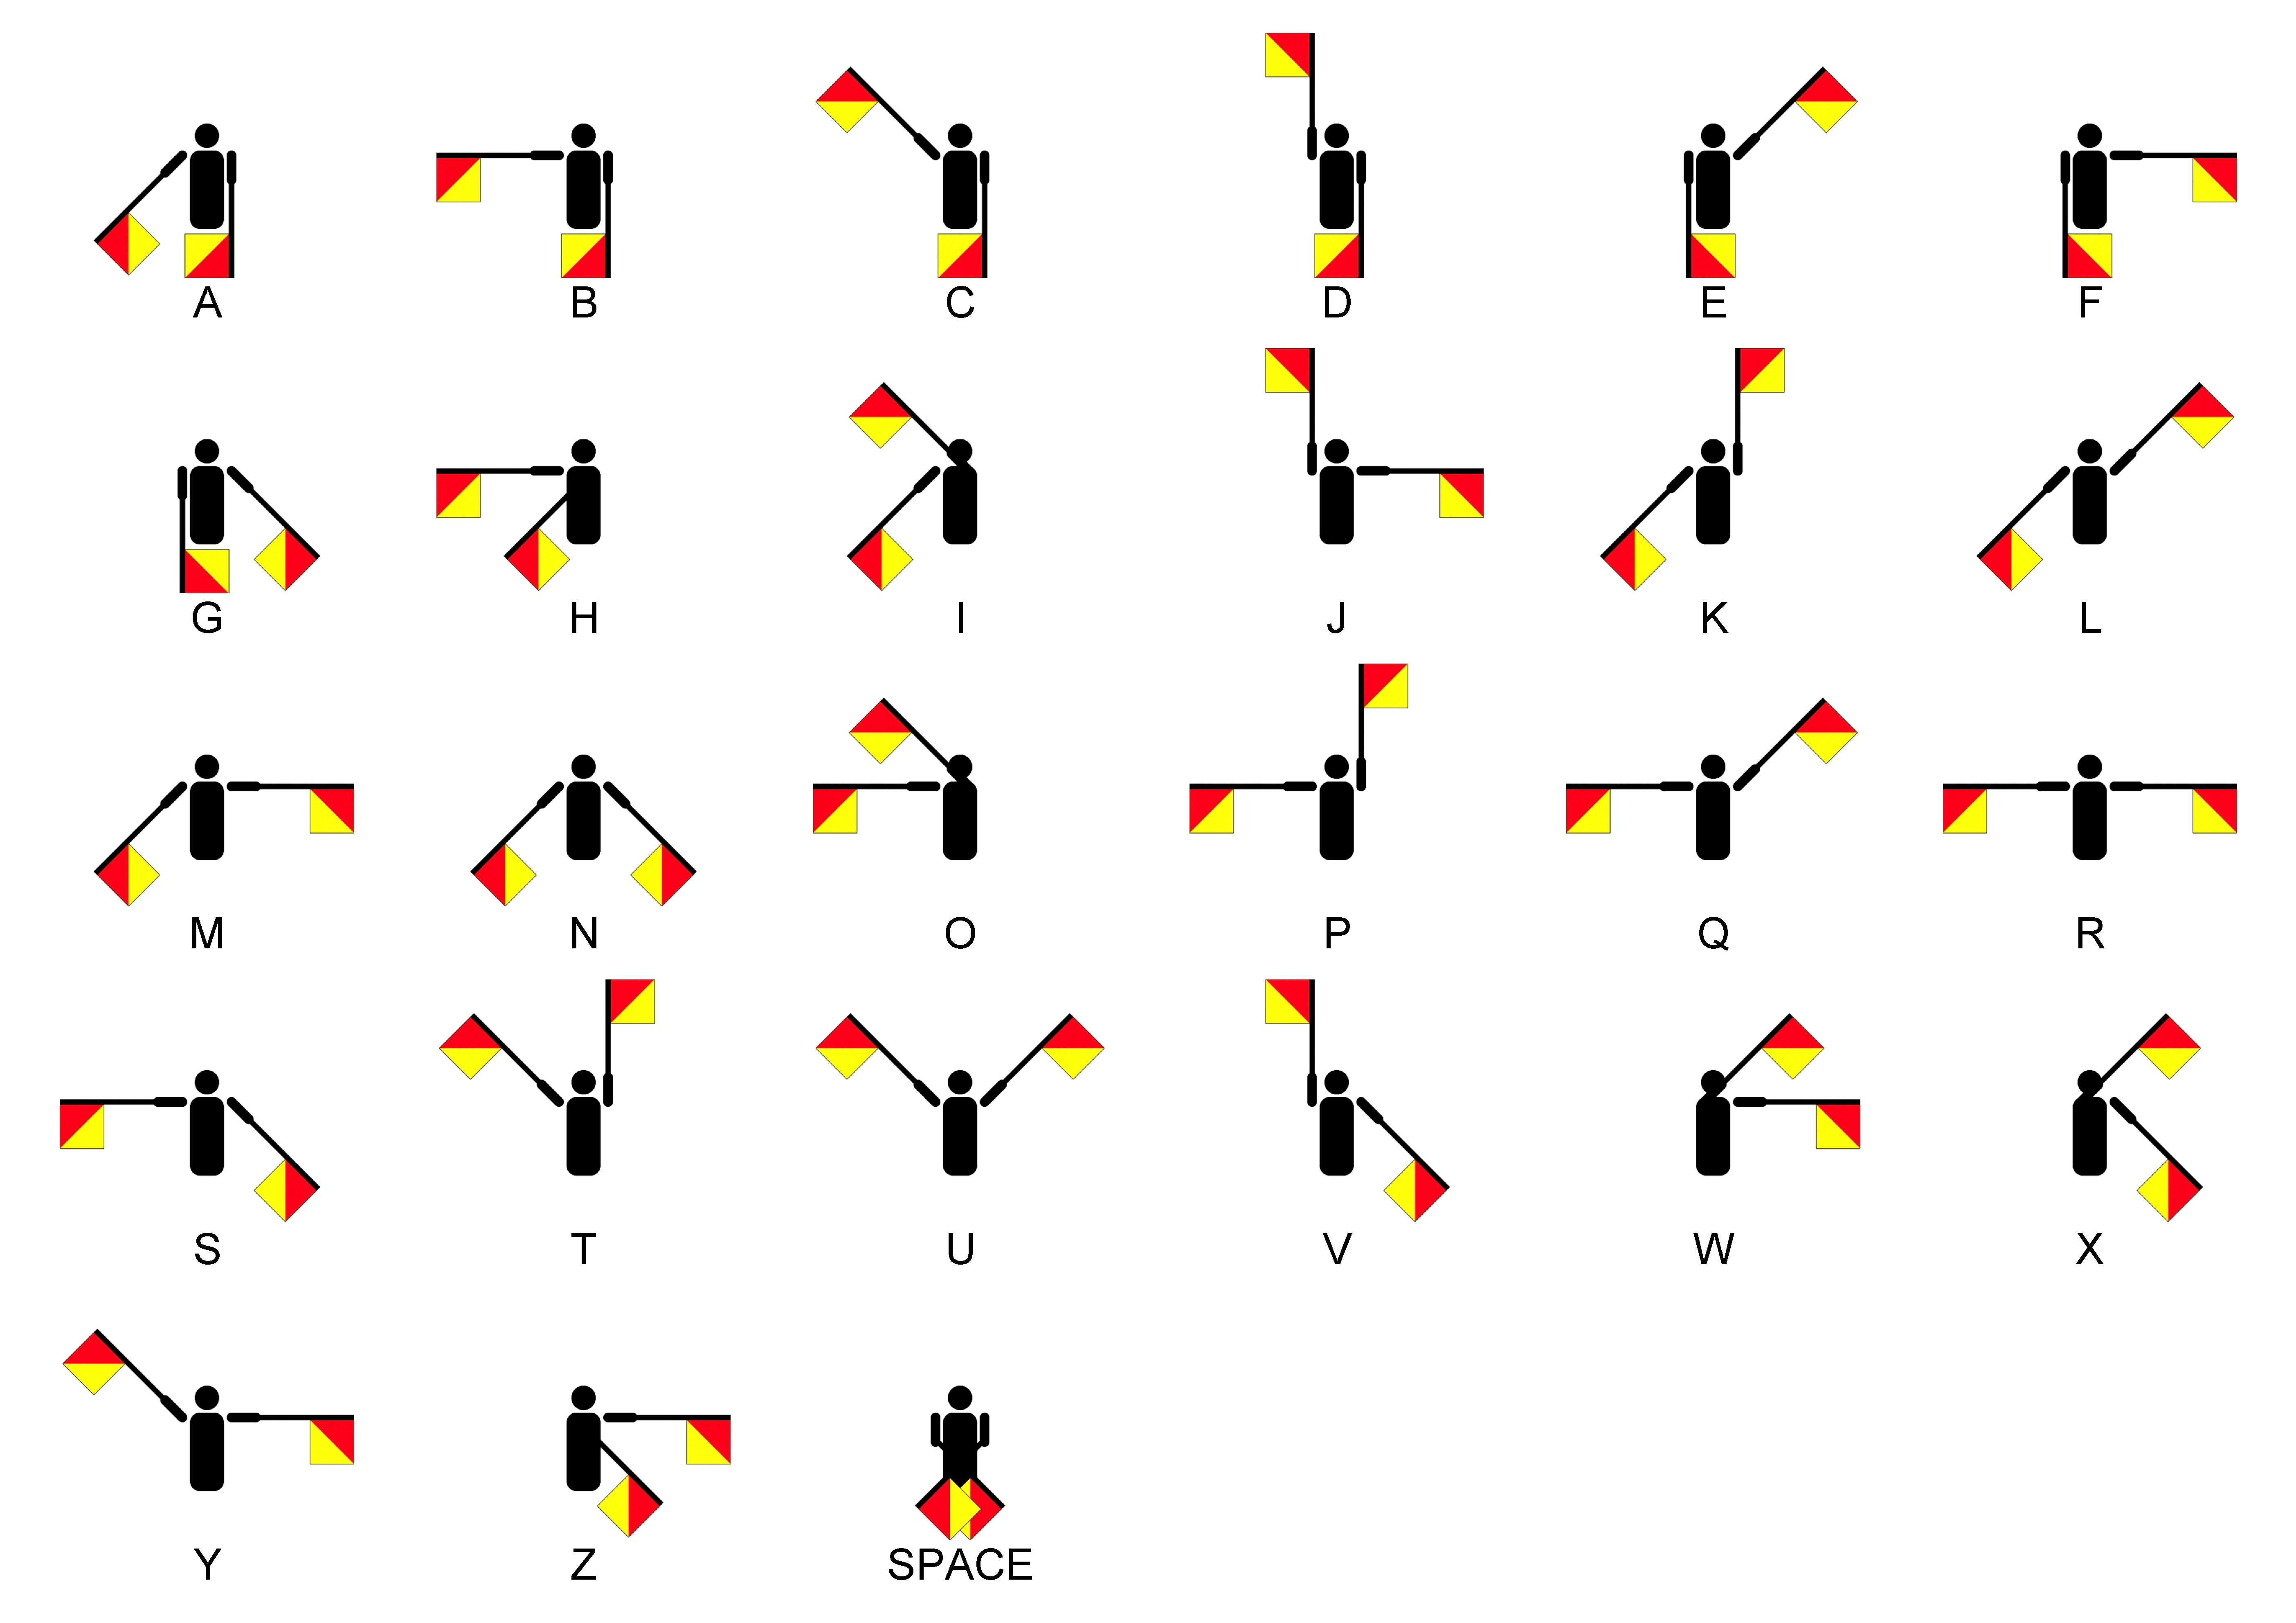 Alphabet Chart With Pictures: Semaphore Signals A-Z.jpg - Wikimedia Commons,Chart